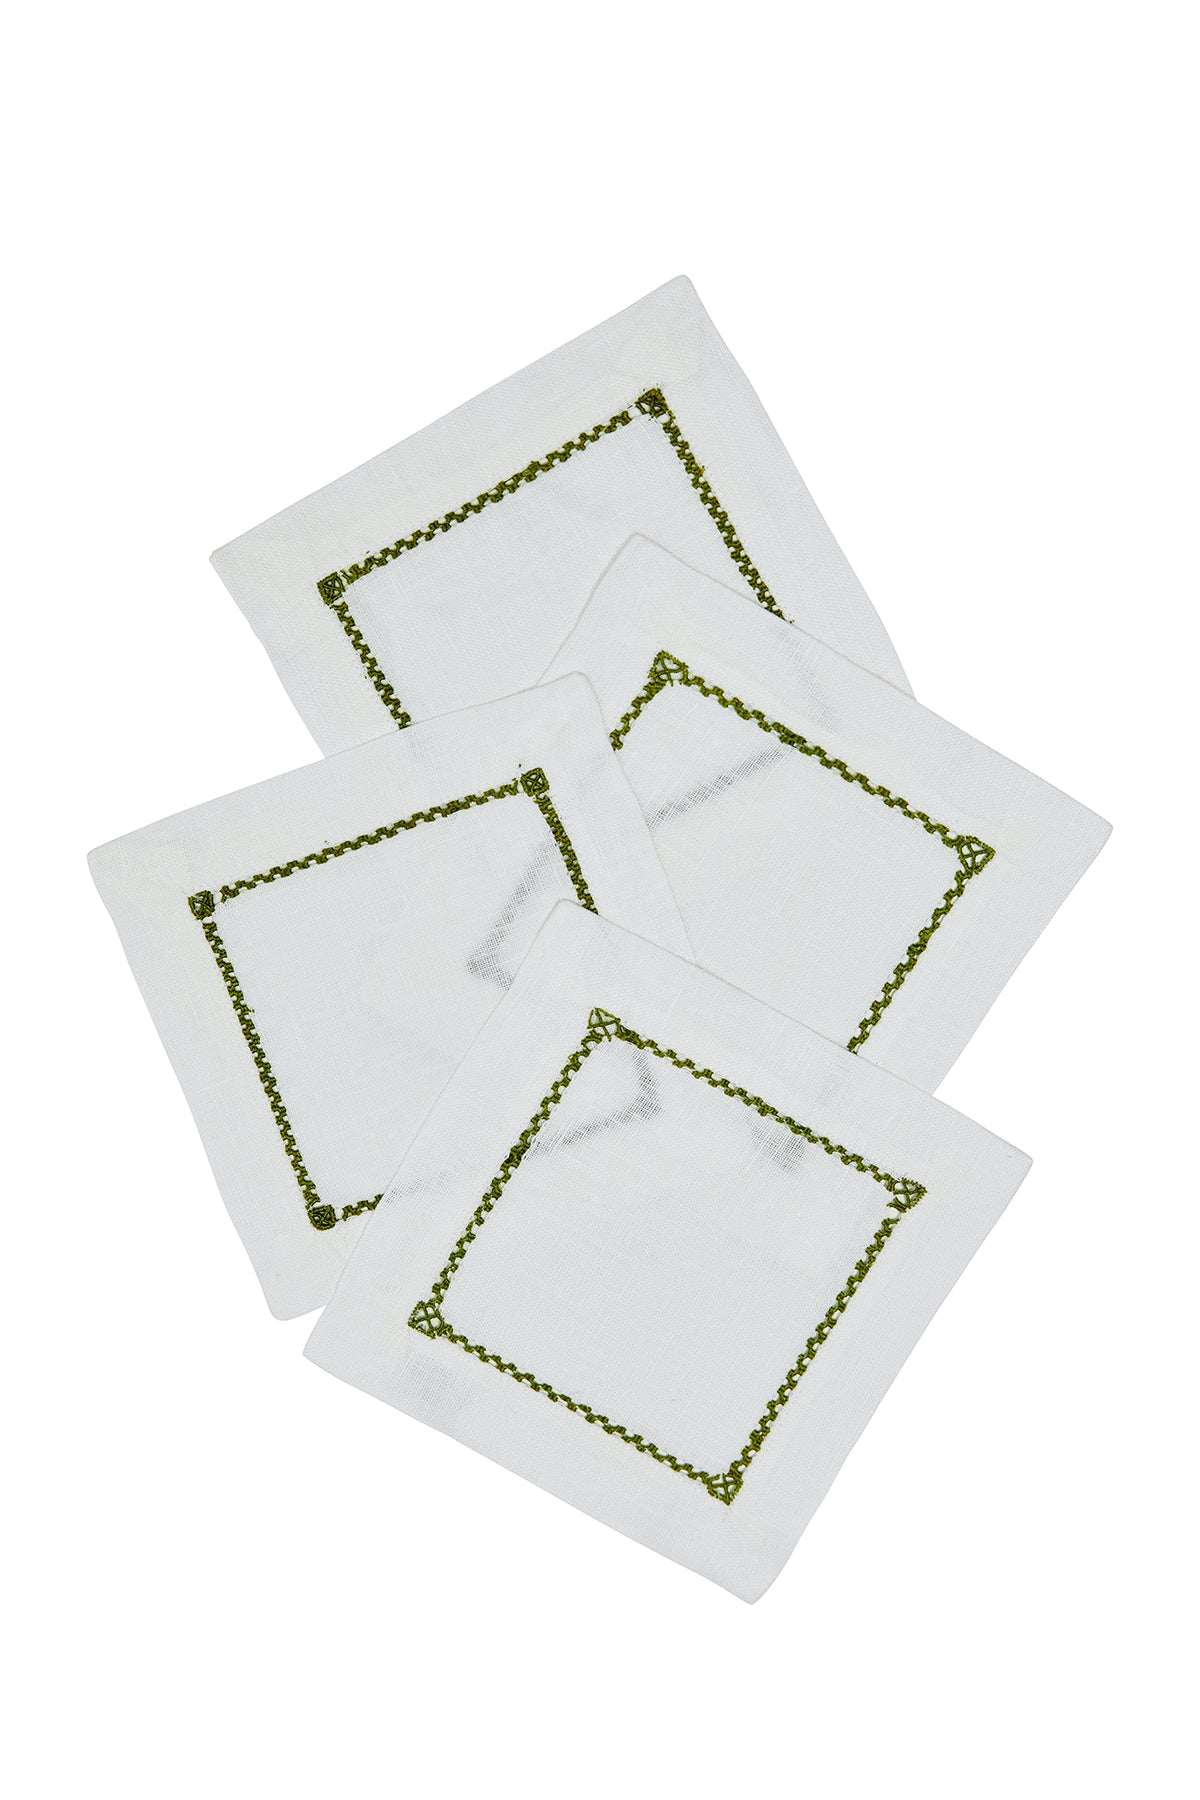 Open Hemstitch Cocktail Napkin